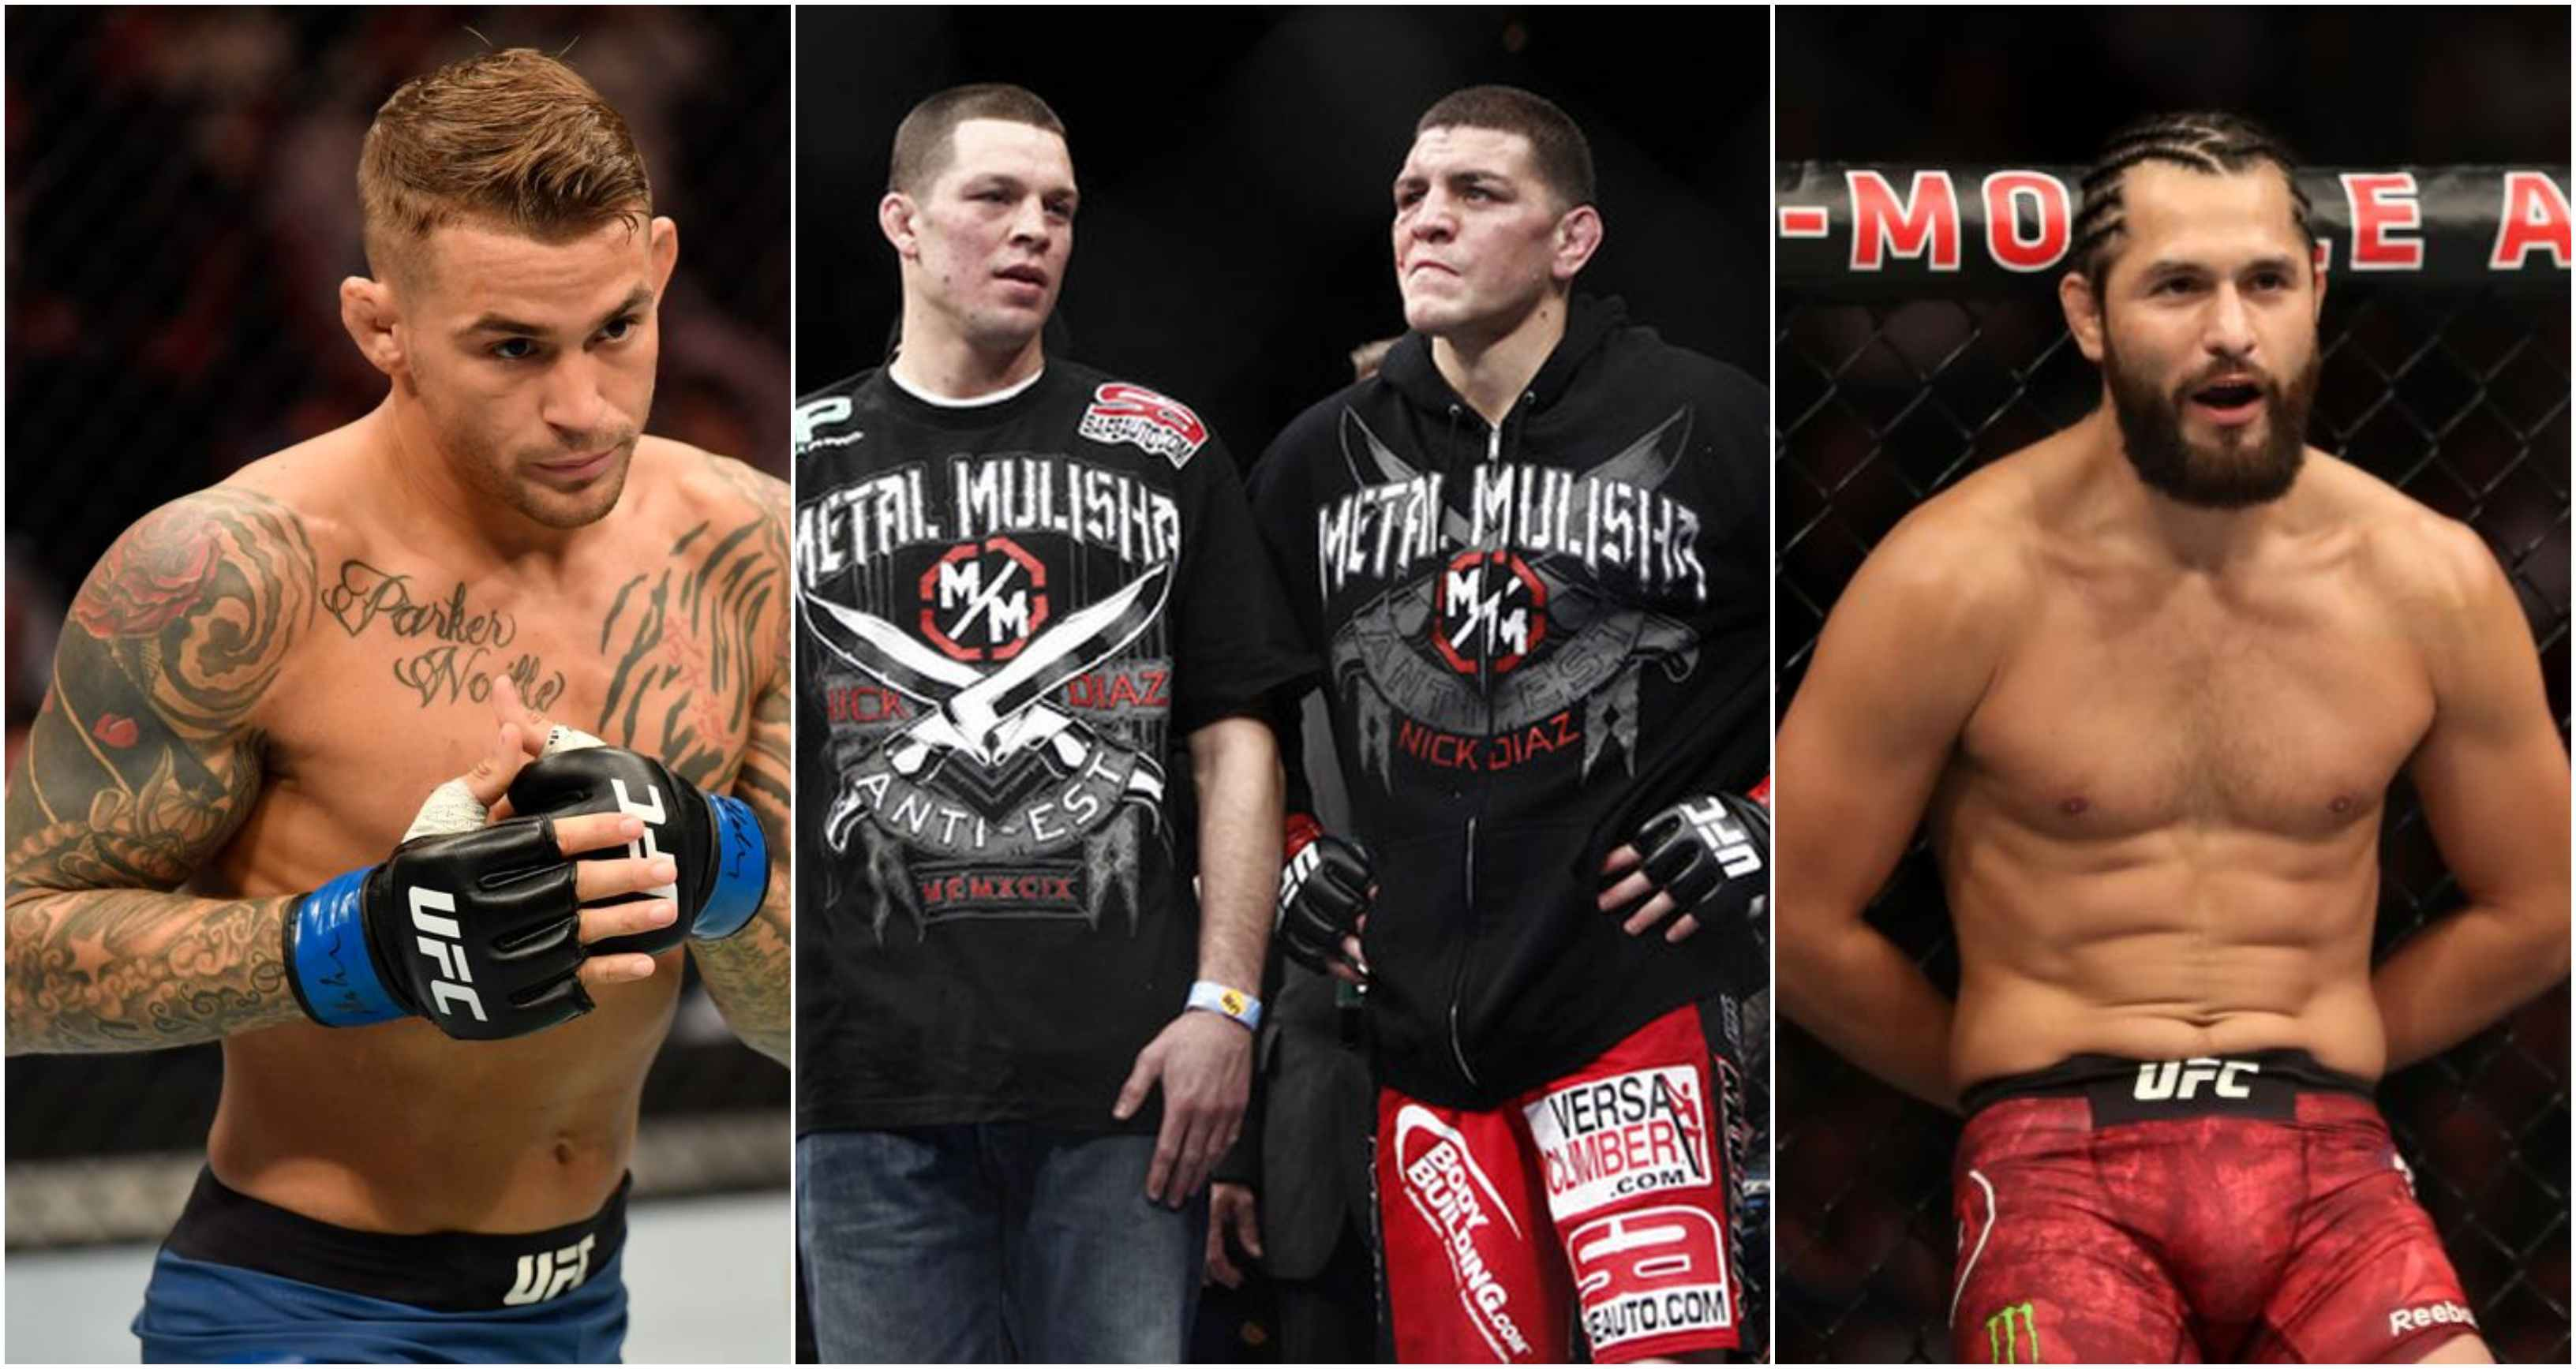 Dustin Poirier calls for tag team fight against the Diaz brothers and Jorge Masvidal 'co signs' it - Poirier